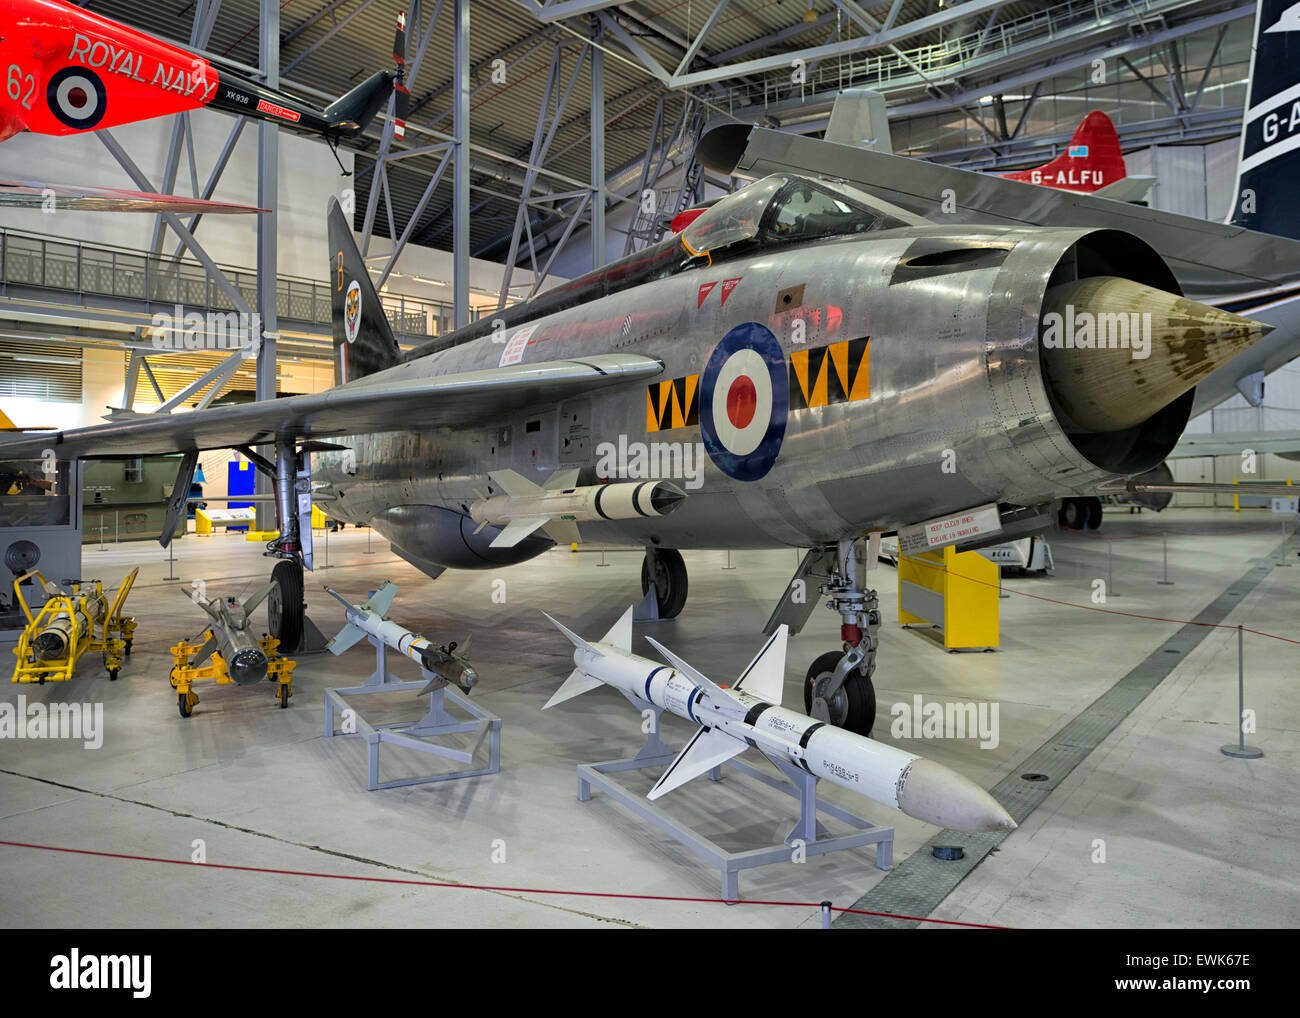 English Electric Lighting at IWM Duxford, UK - Stock Image